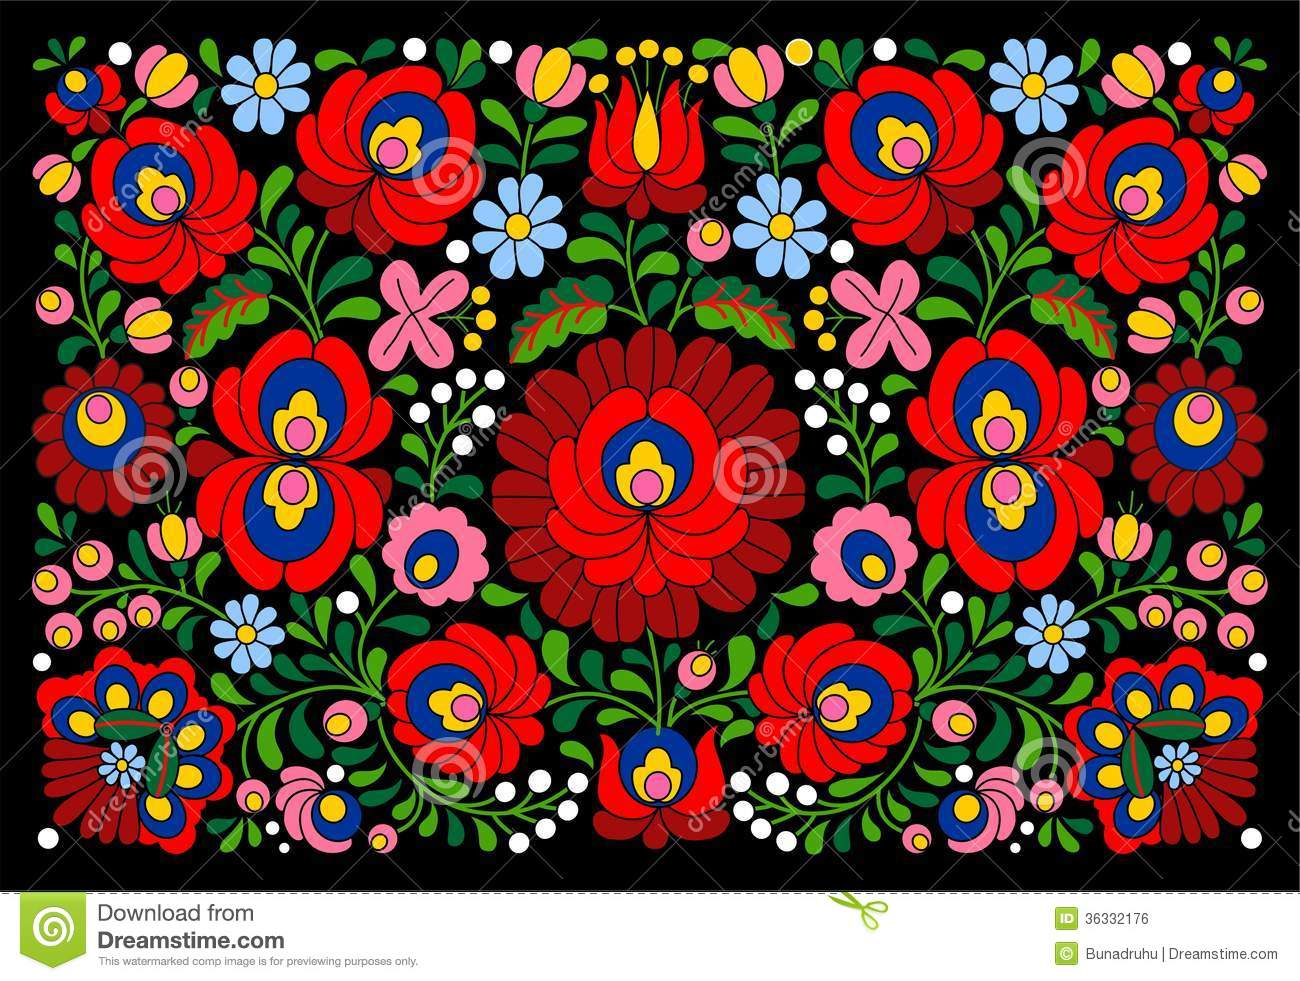 Authentic Hungarian Pattern Royalty Free Stock Image - Image: 36332176